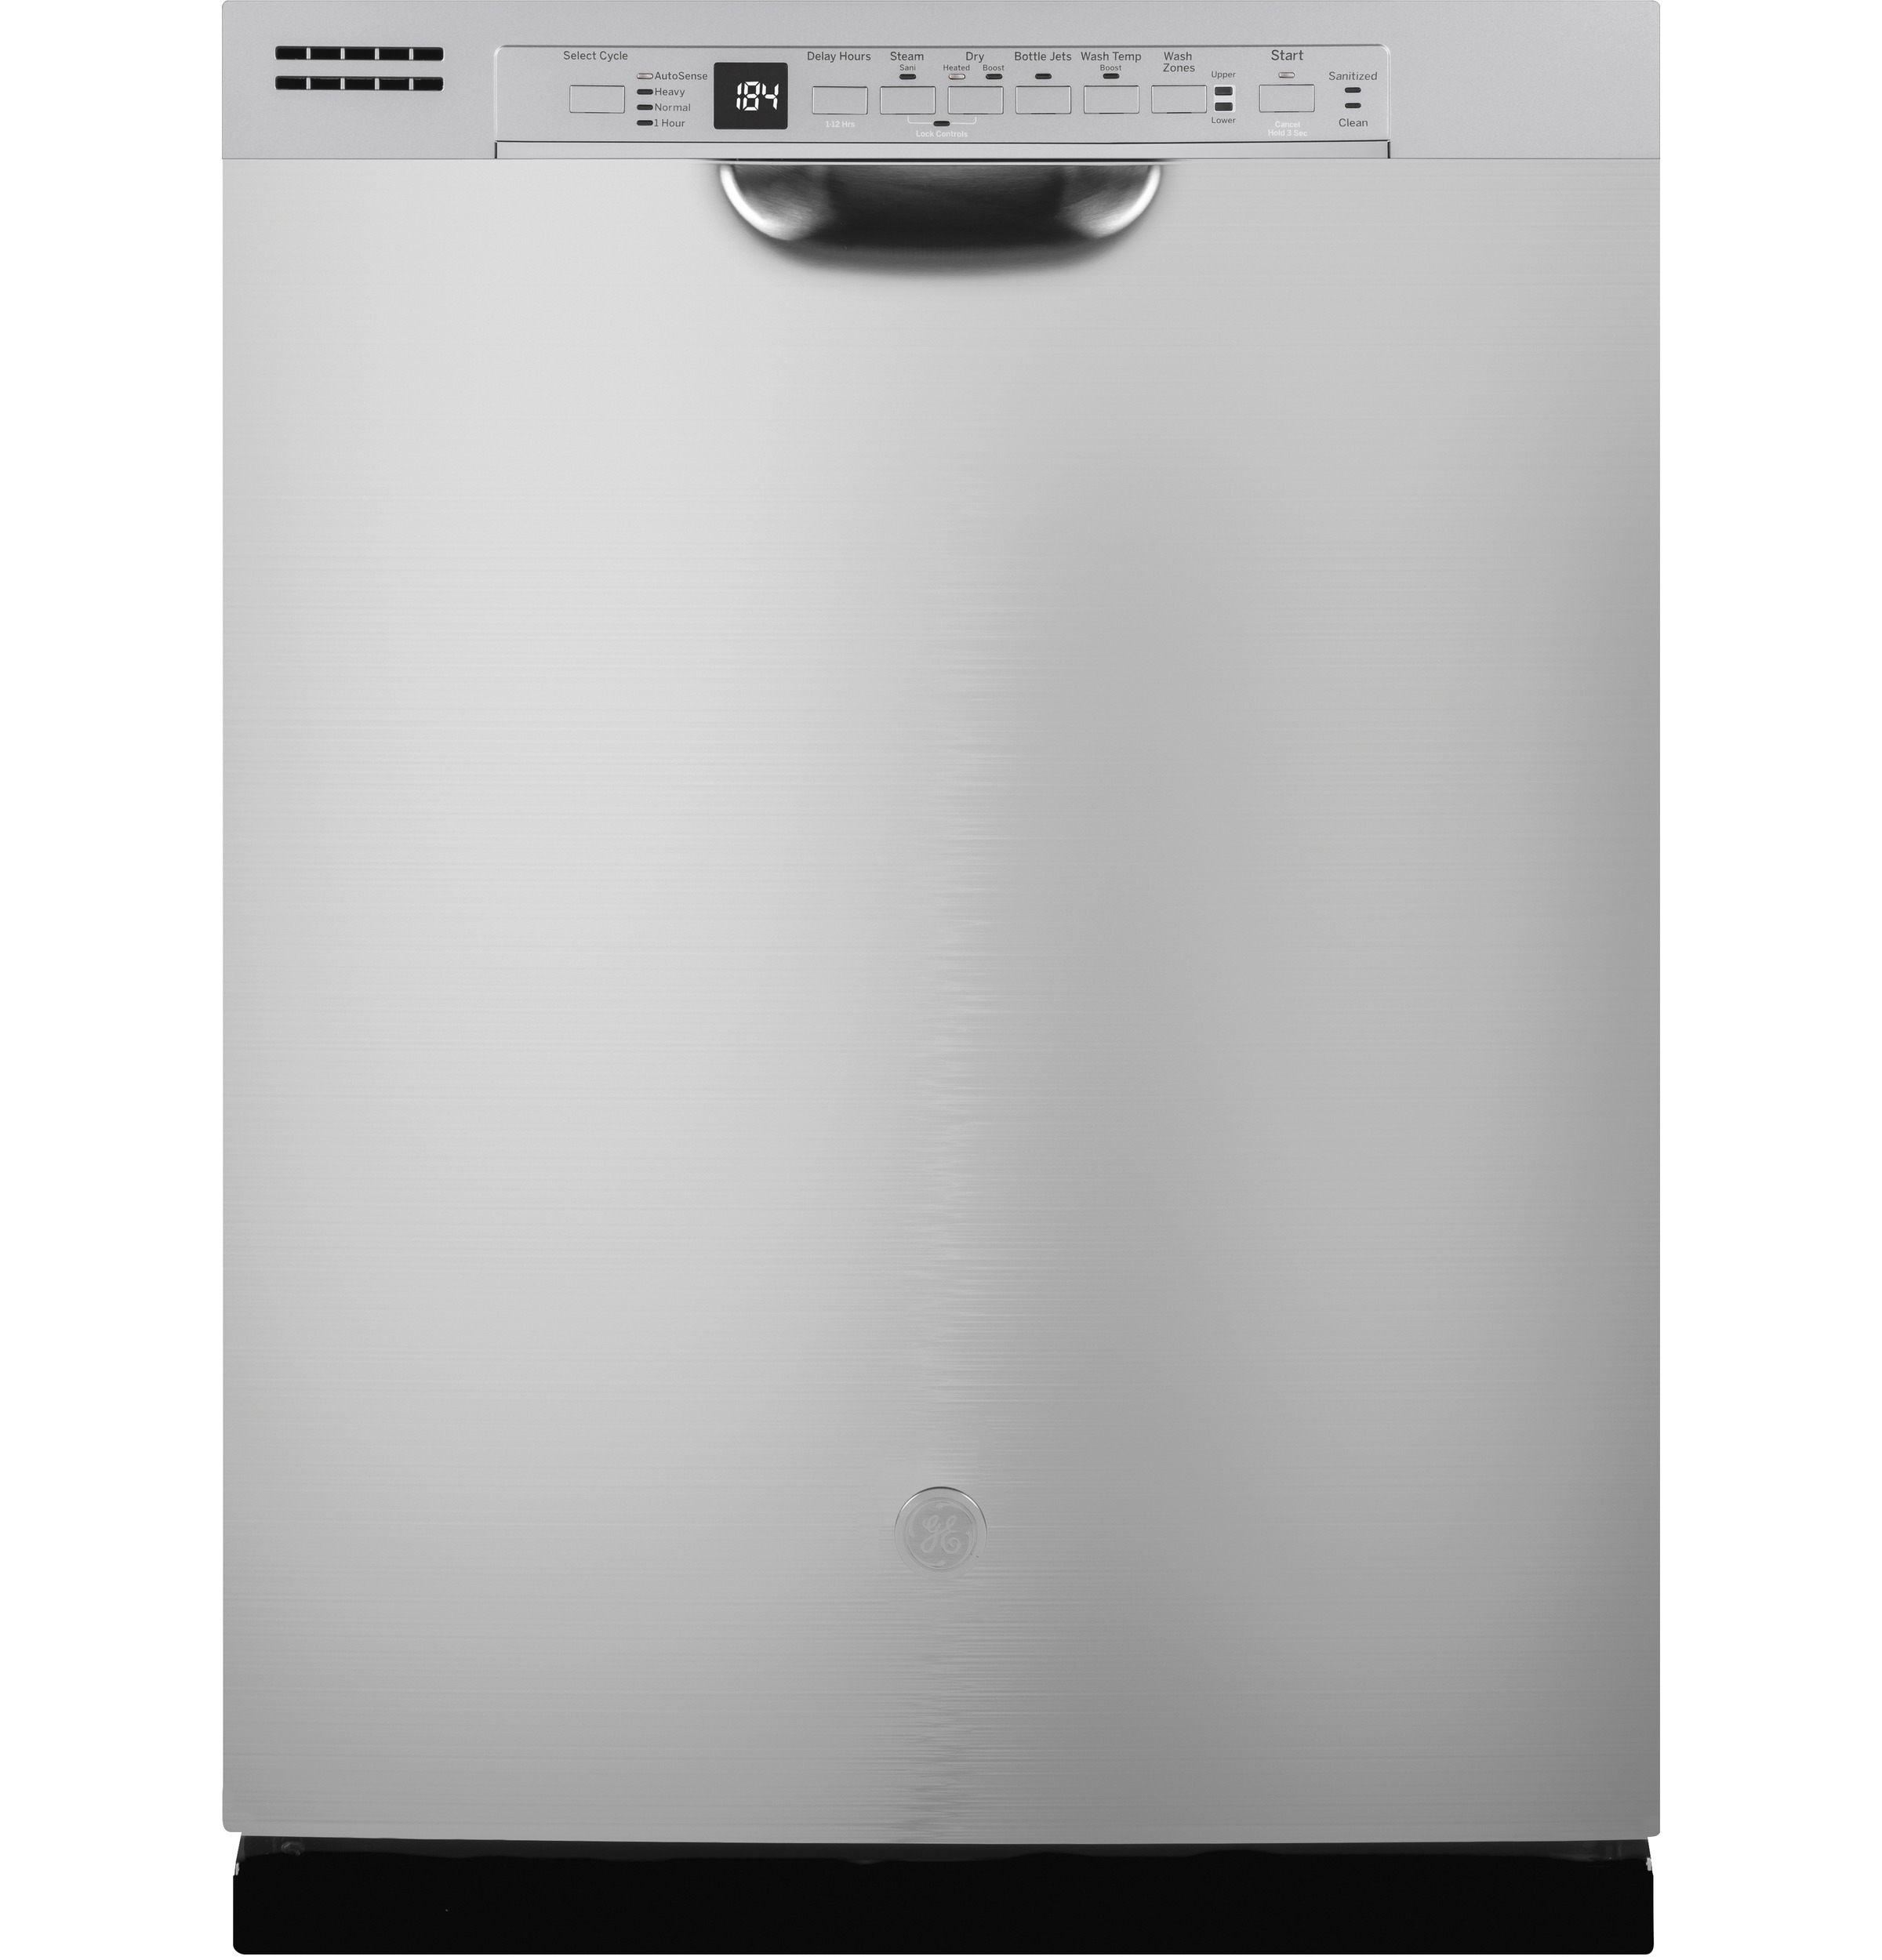 GE GE® Front Control with Stainless Interior Door Dishwasher with Sanitize Cycle & Dry Boost